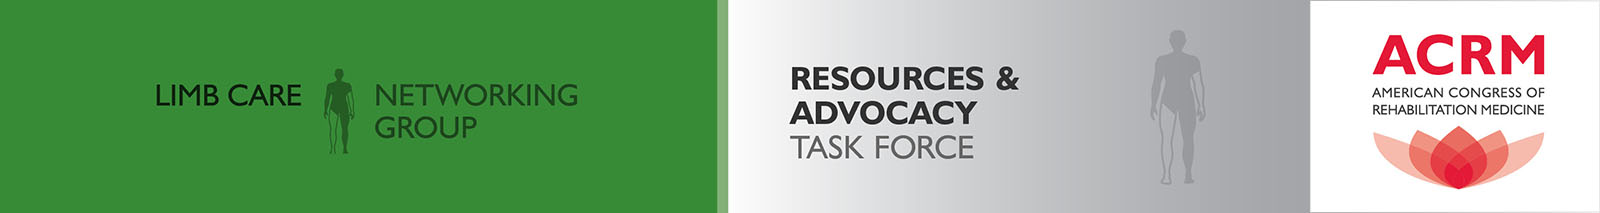 Limb Care Networking Group RESOURCES & ADVOCACY TASK FORCE